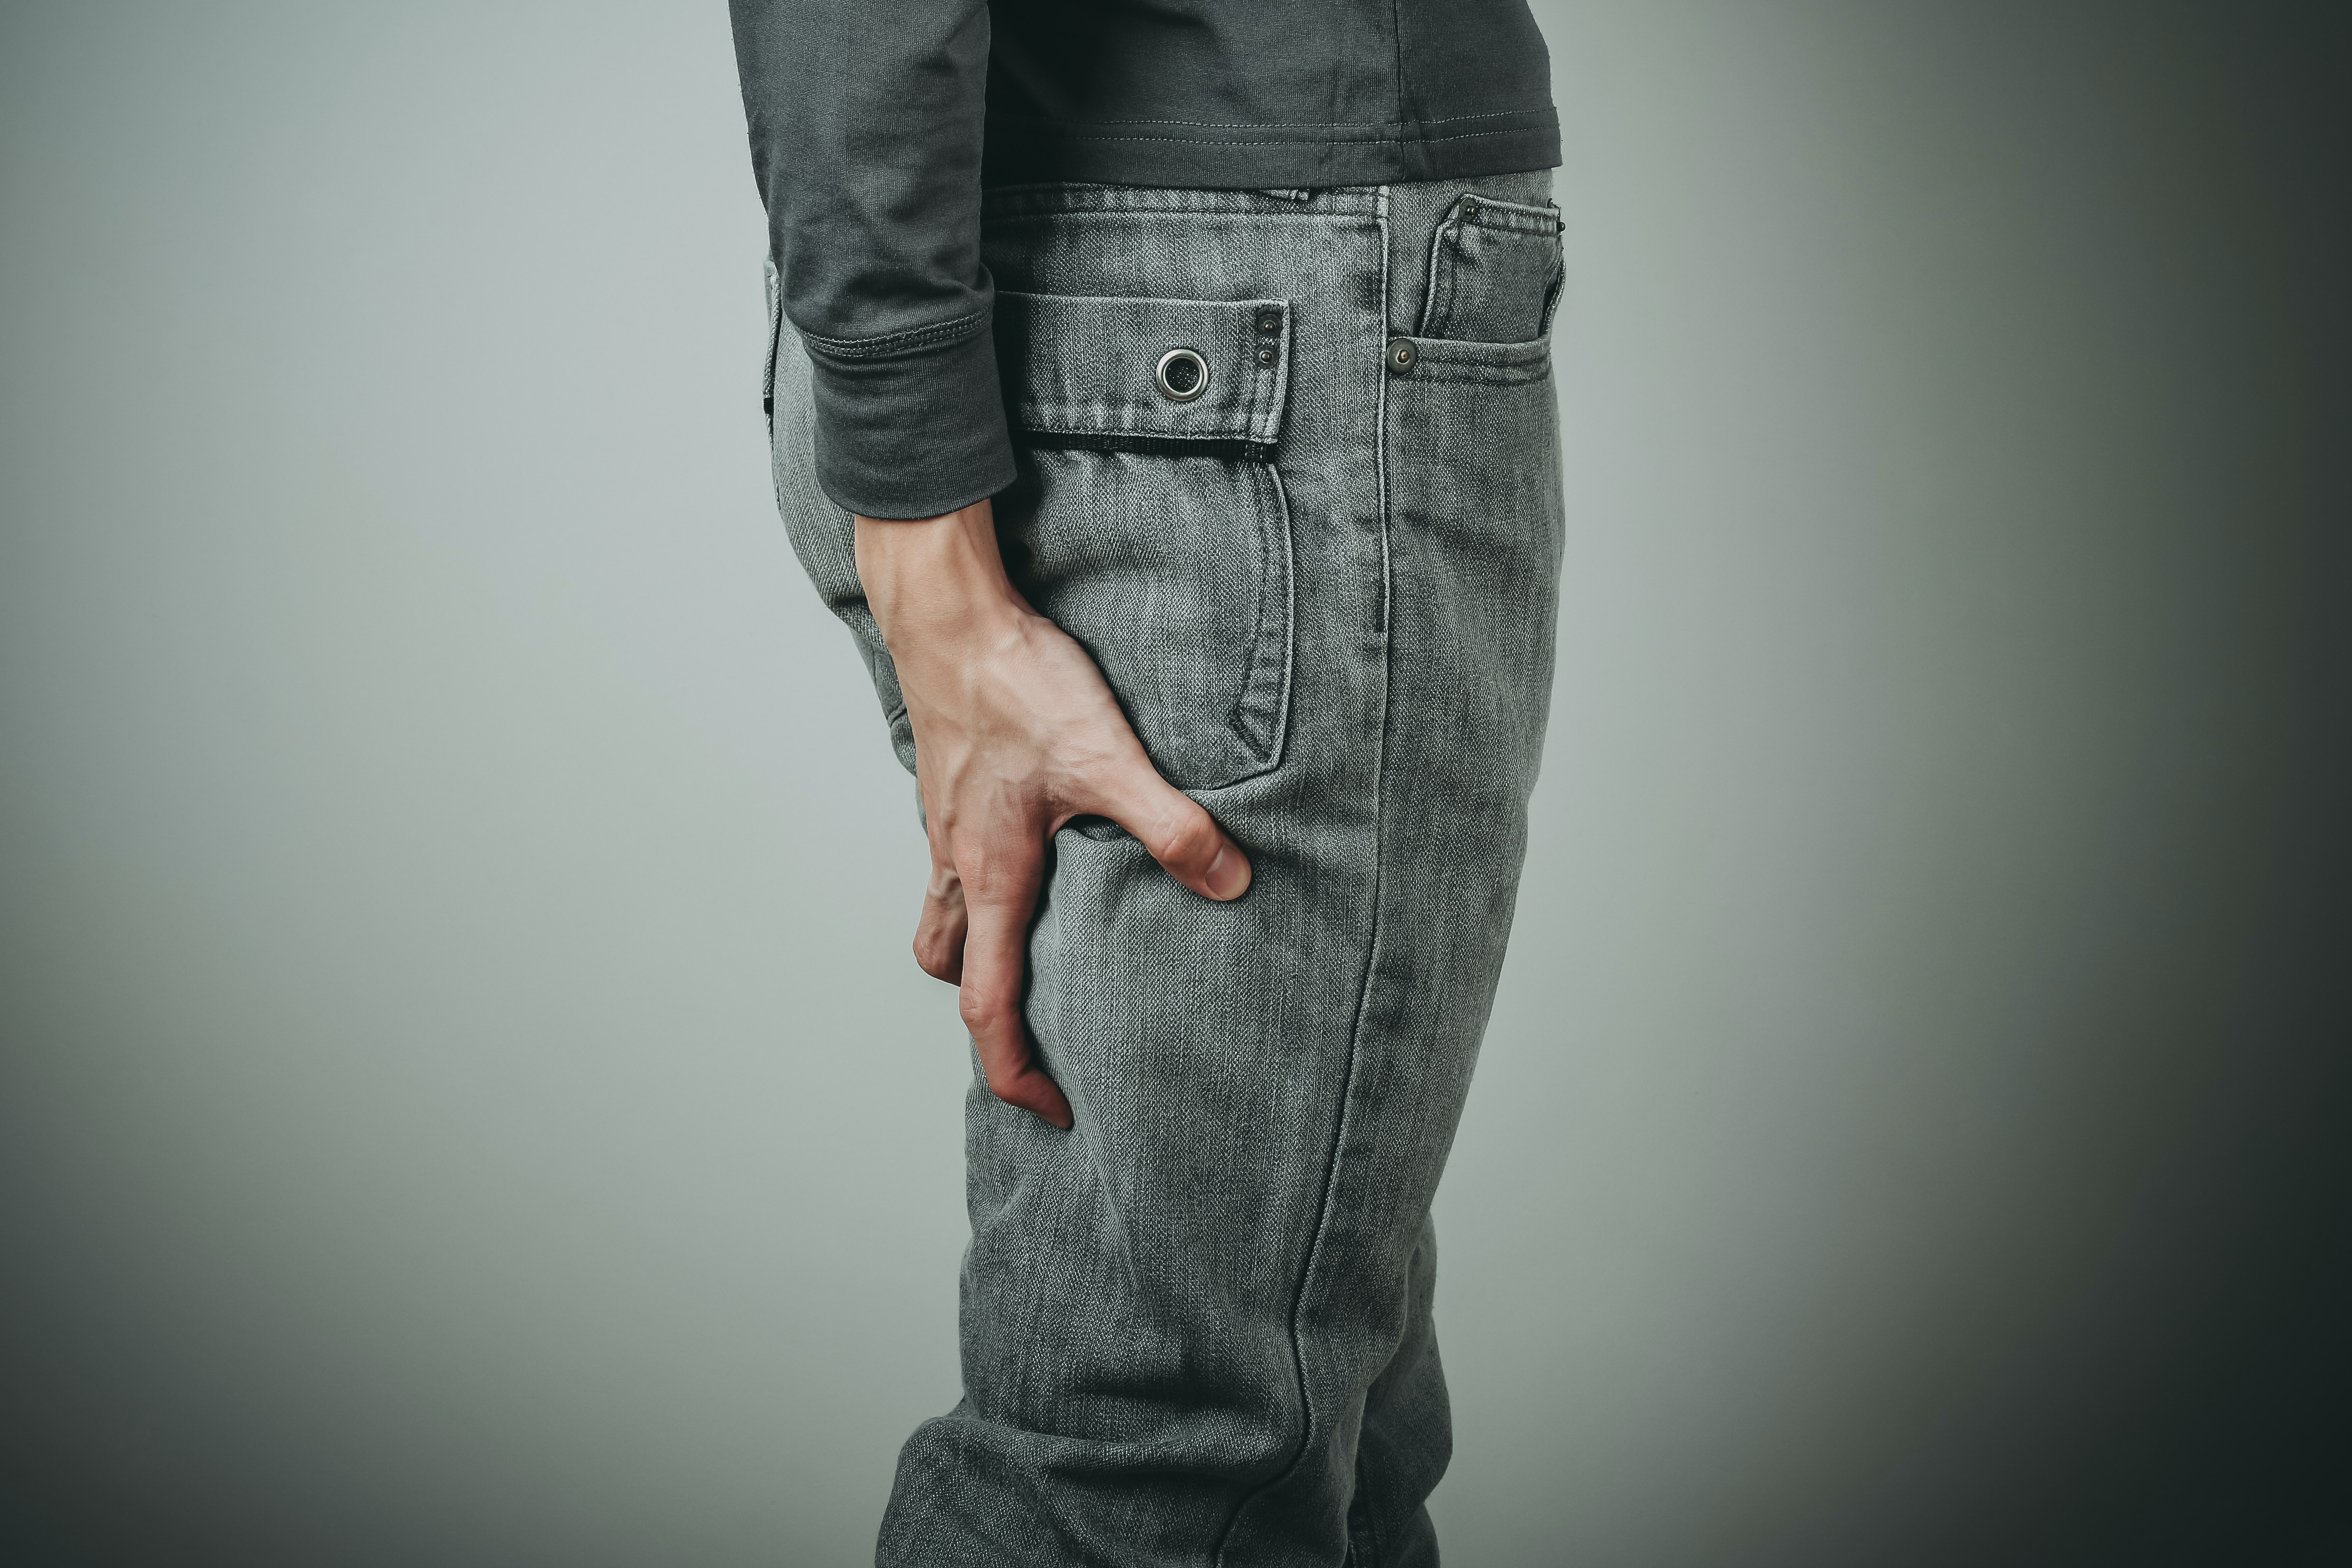 An image depicting a person suffering from hamstring pain symptoms